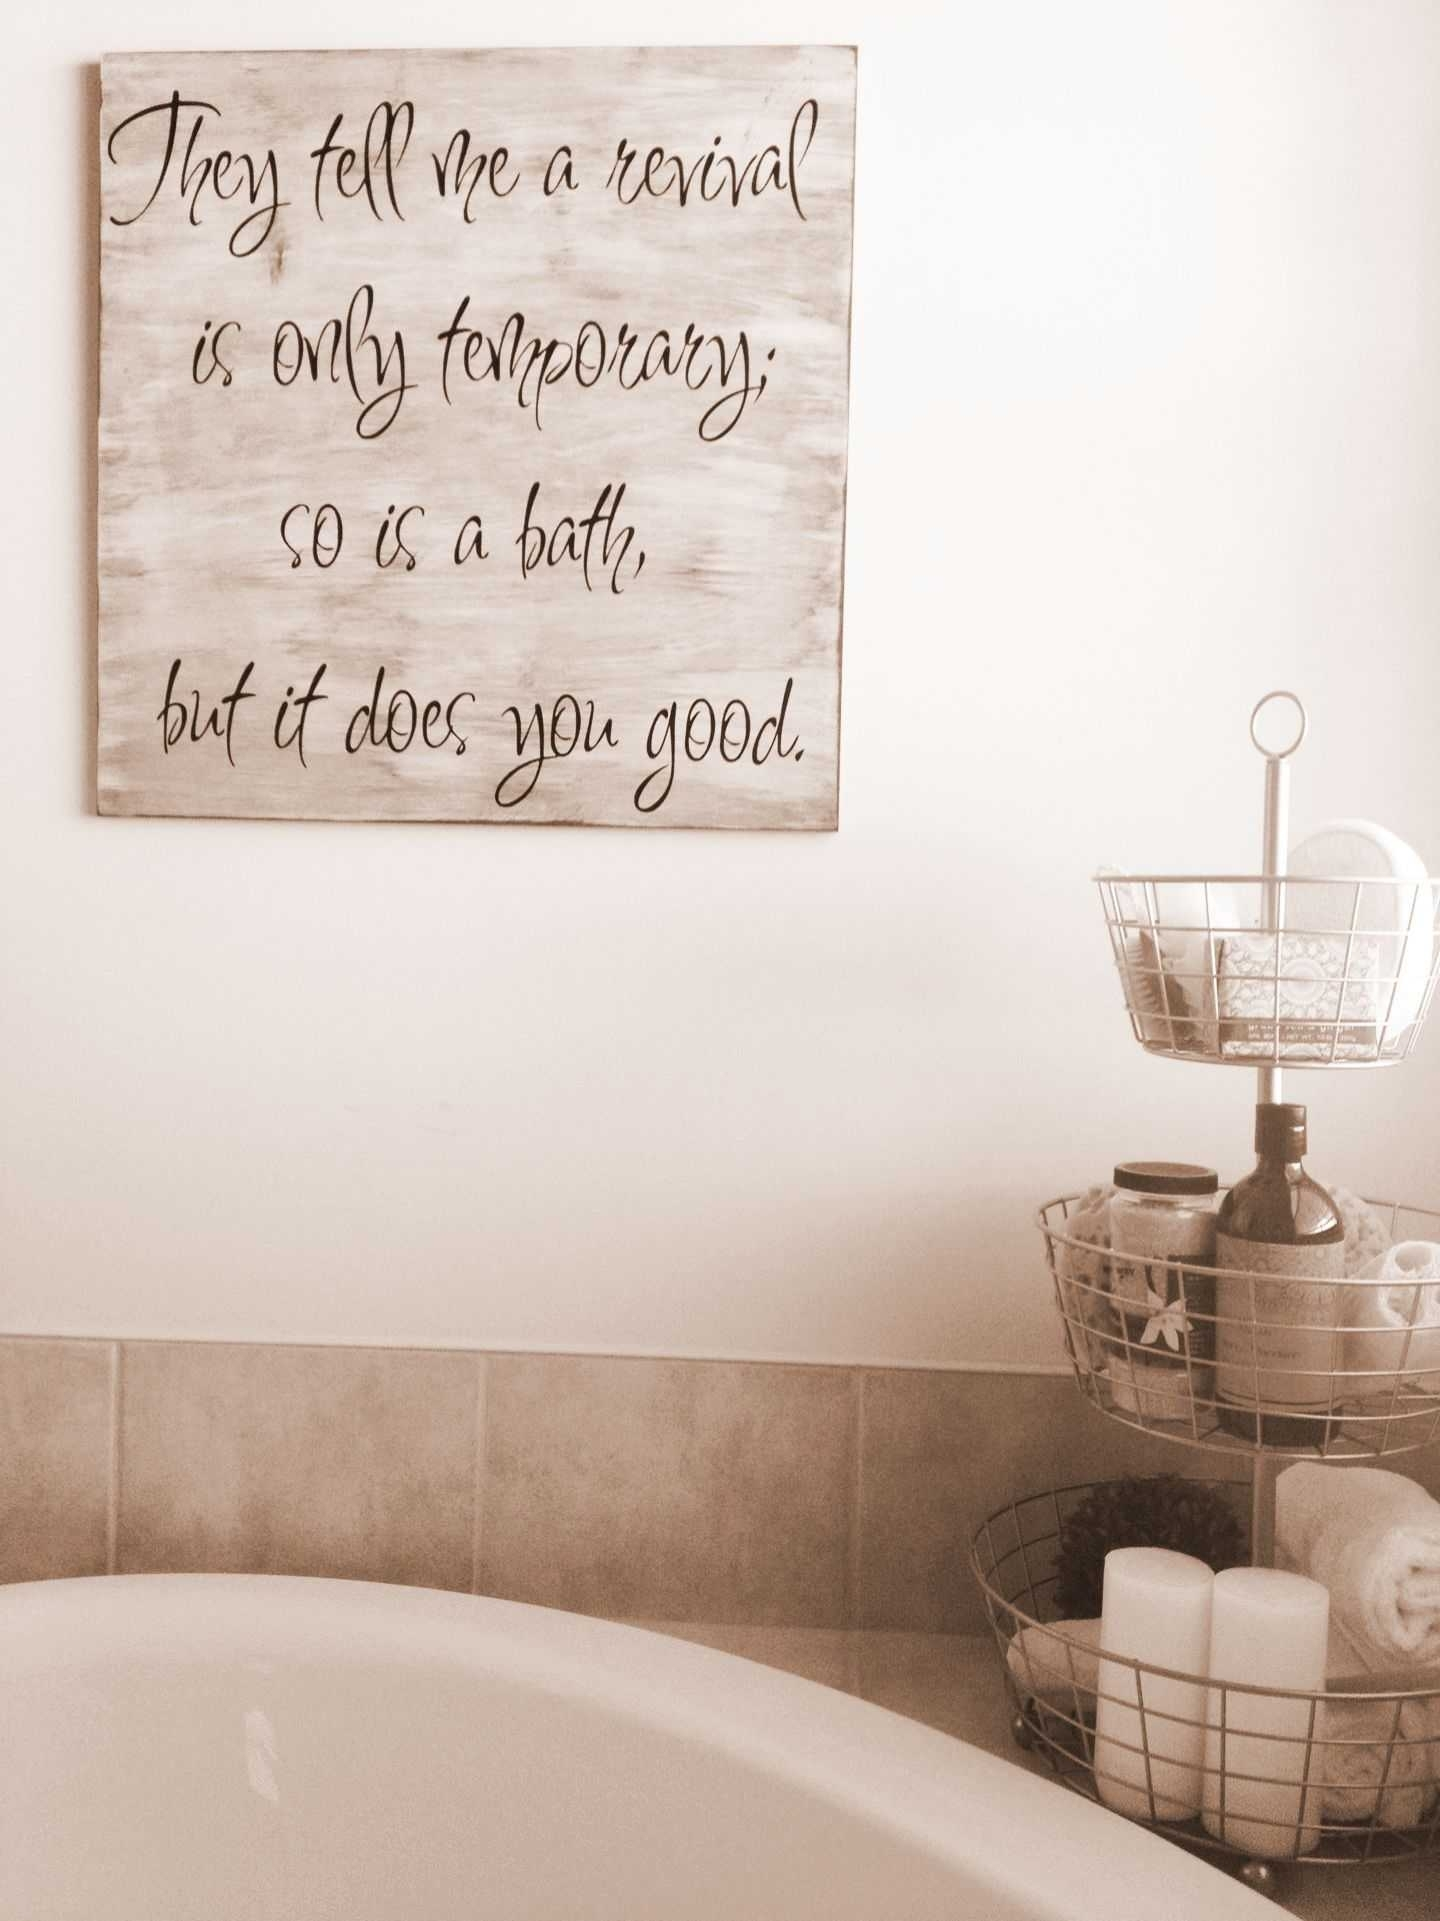 Wall Decorations For Bathroom Pictures Pinalexis Kole On House Throughout Current Wall Accents For Bathroom (View 8 of 15)